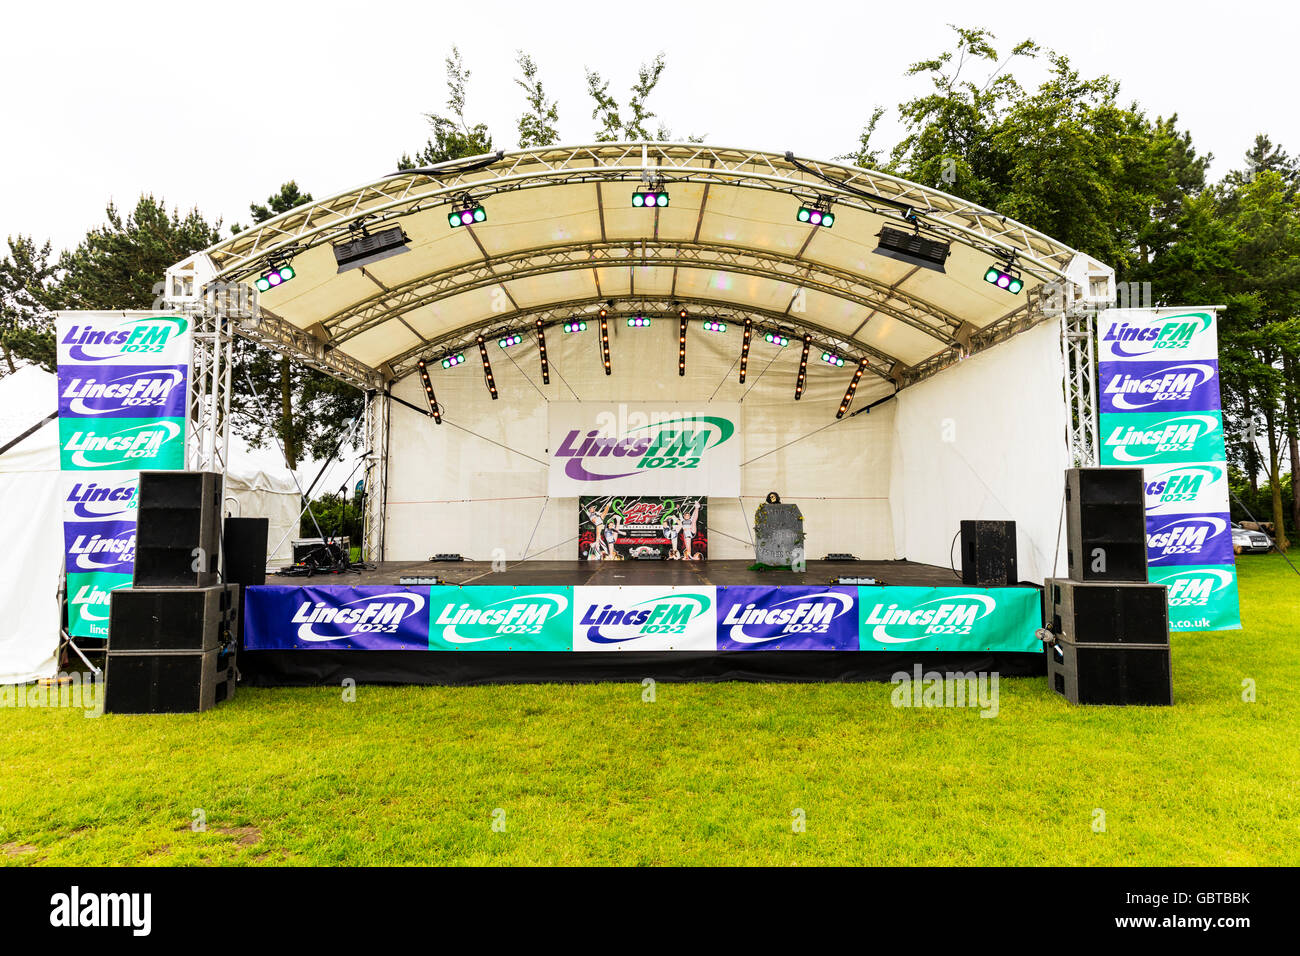 Empty stage setup lights lighting sound speakers waiting for show Lincs FM radio station UK England GB - Stock Image